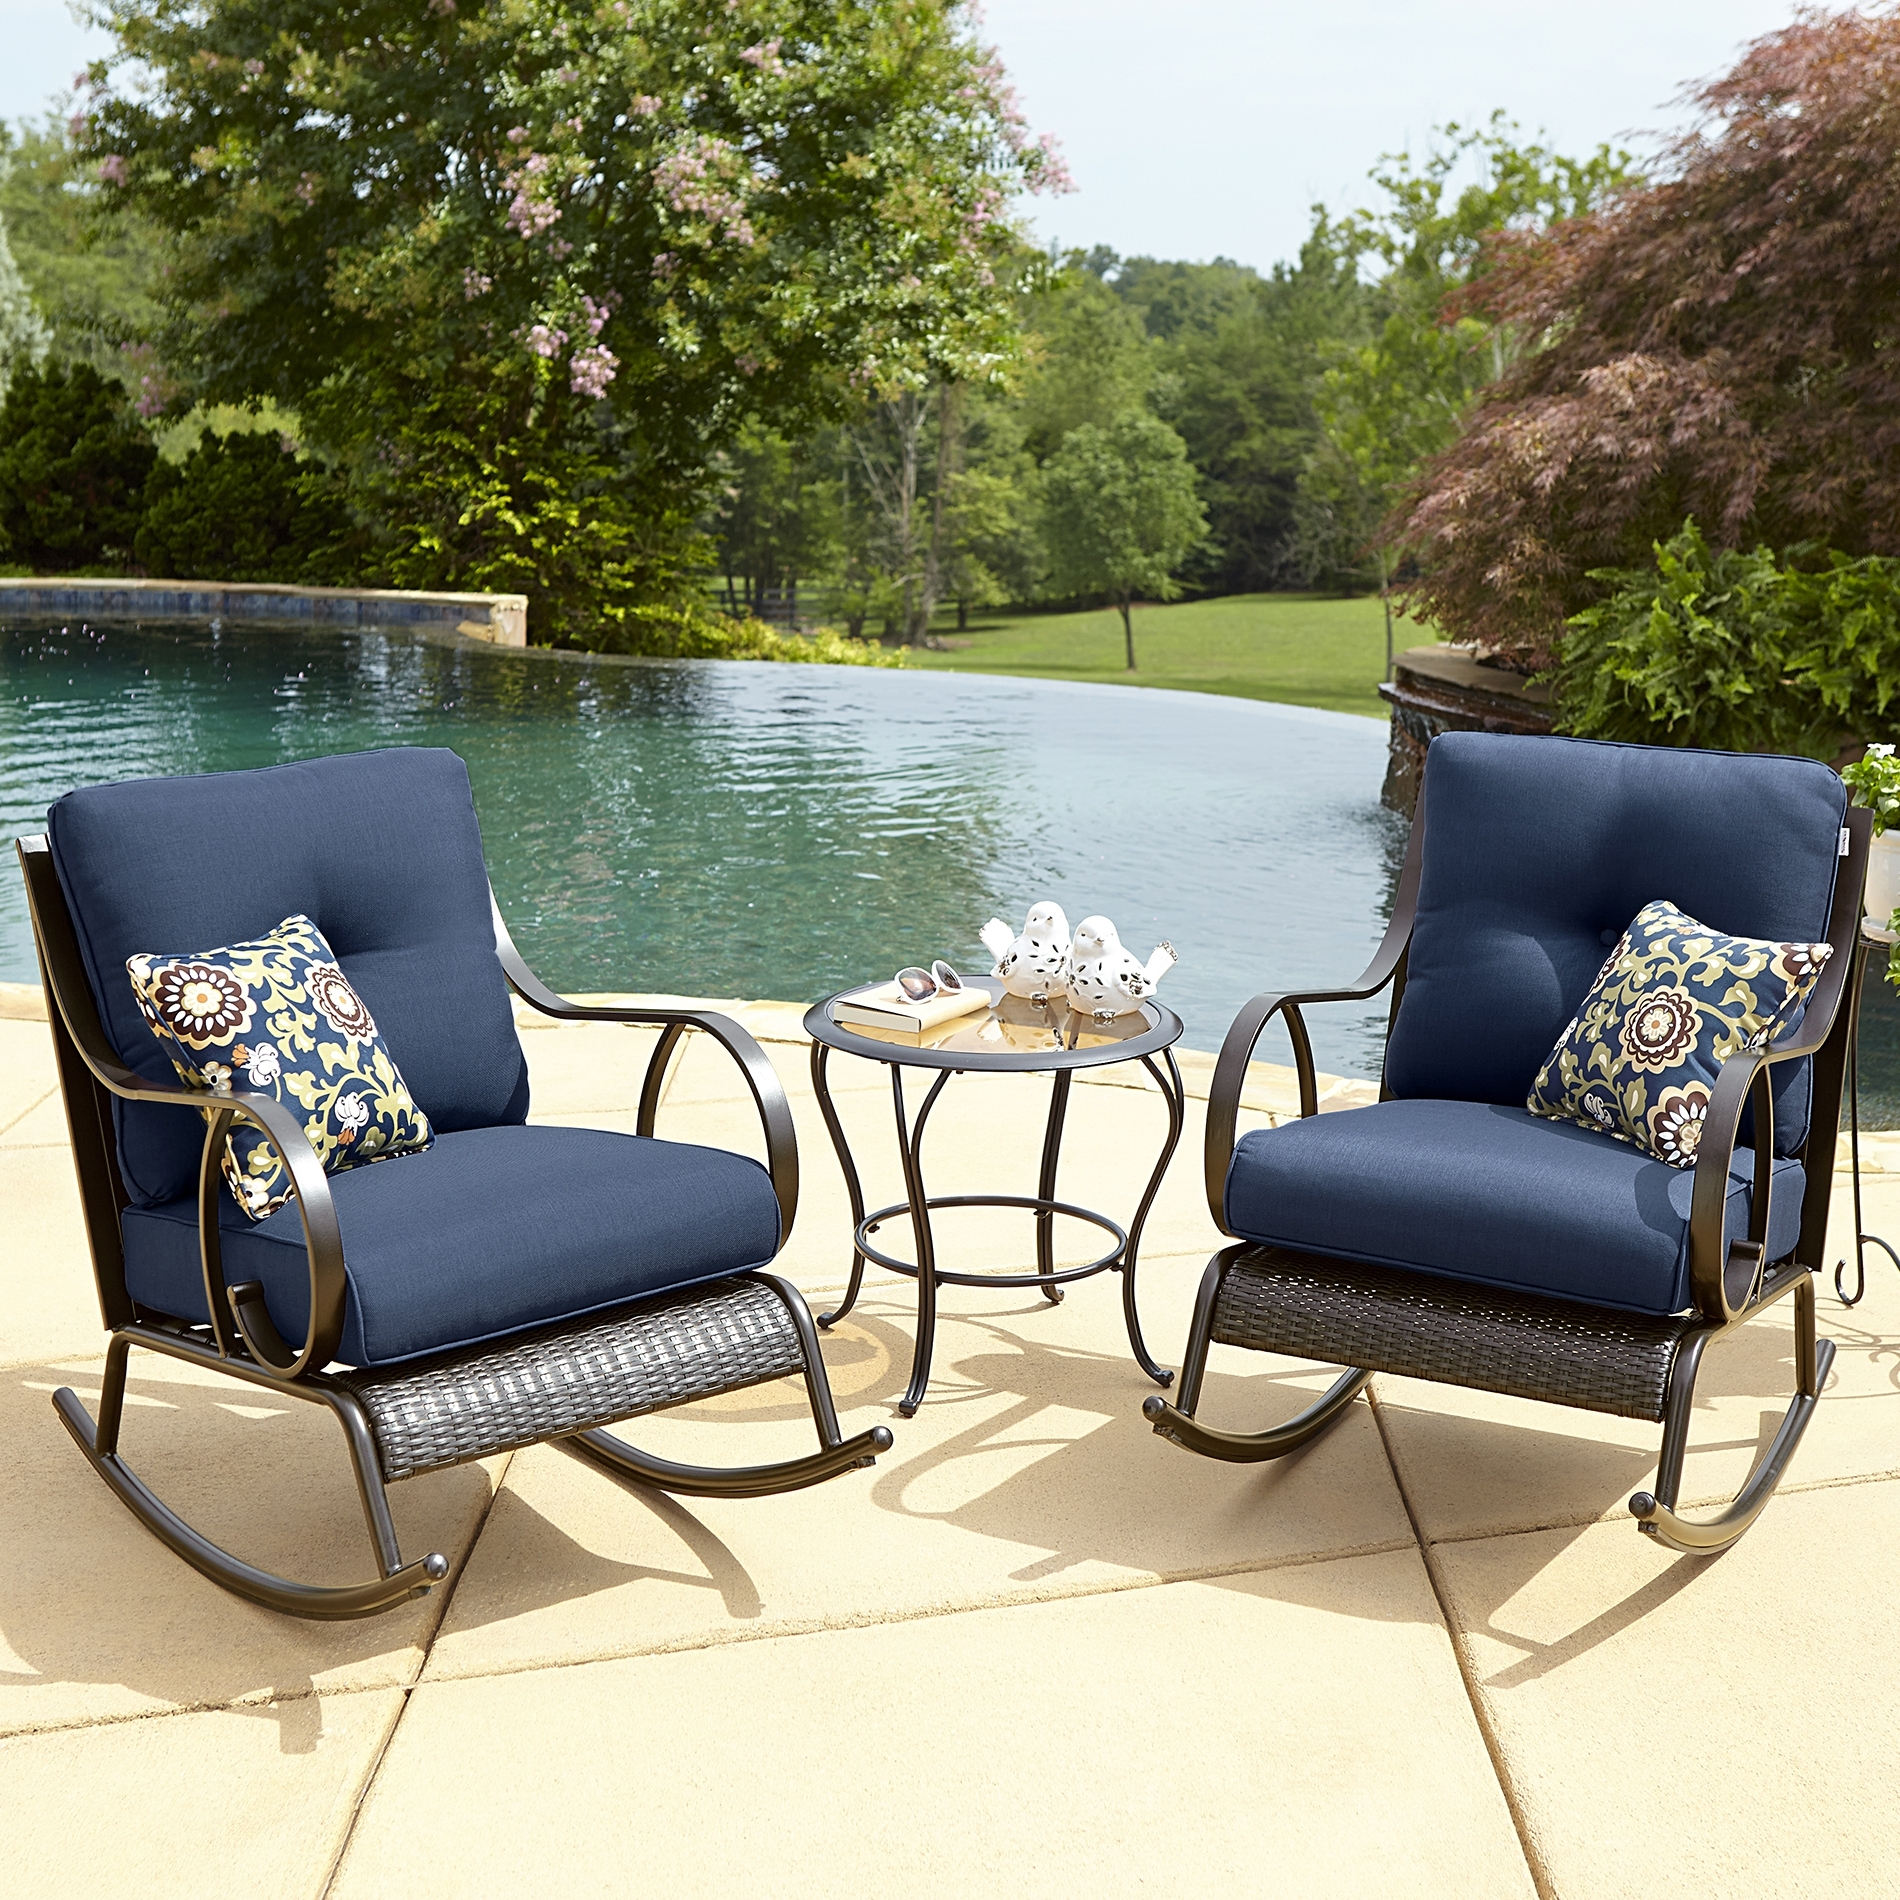 Boy Outdoor Avery Piece Bistro Rocking Chair Set Blue Kmart Prod Intended For Best And Newest Outdoor Rocking Chairs With Table (View 3 of 20)